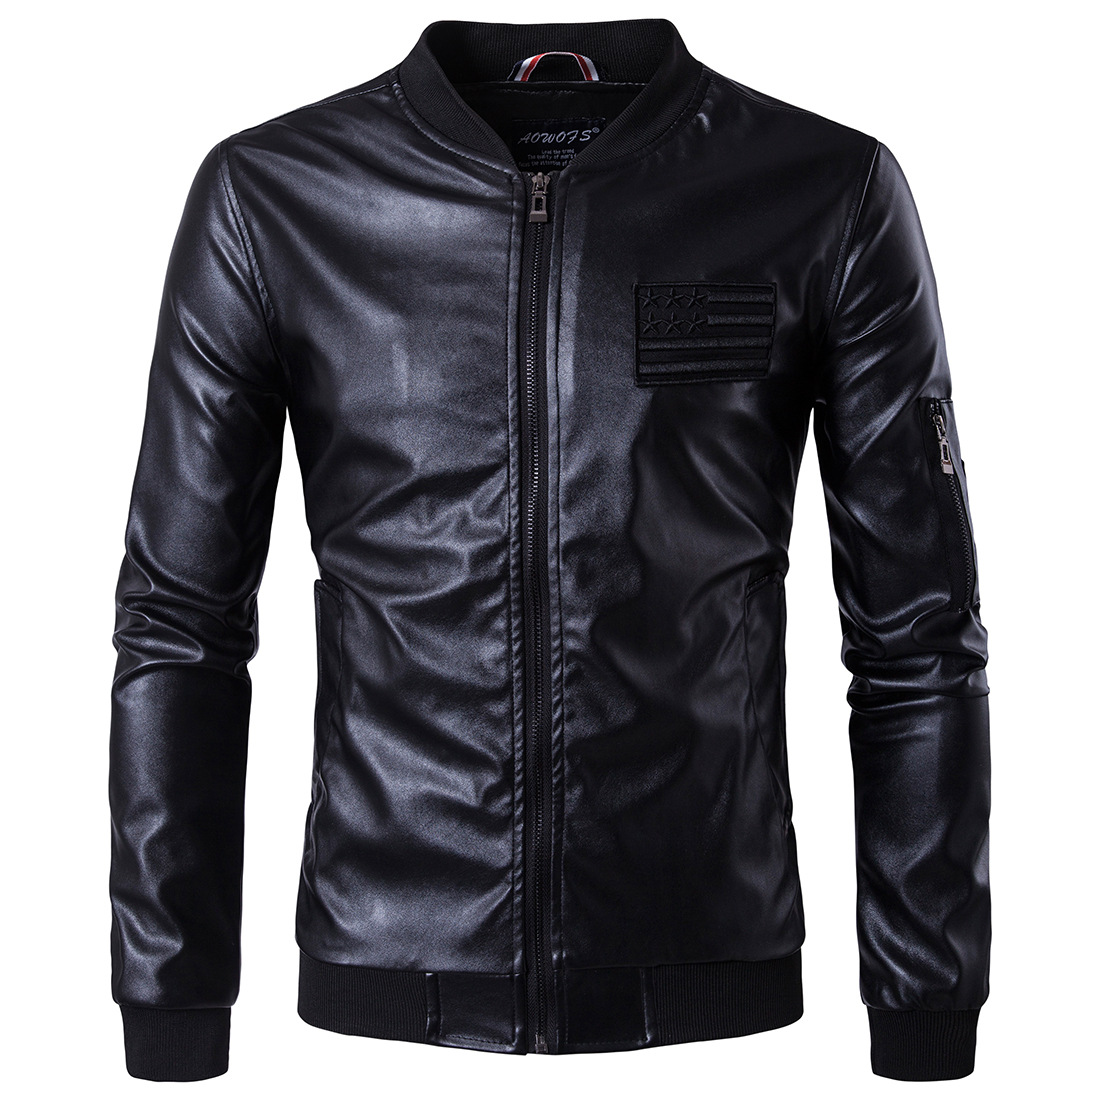 MarKyi 2017 brand new embroidery mens winter leather jacket good quality long sleeve zipper mens motorcycle jacket eu size 5xl